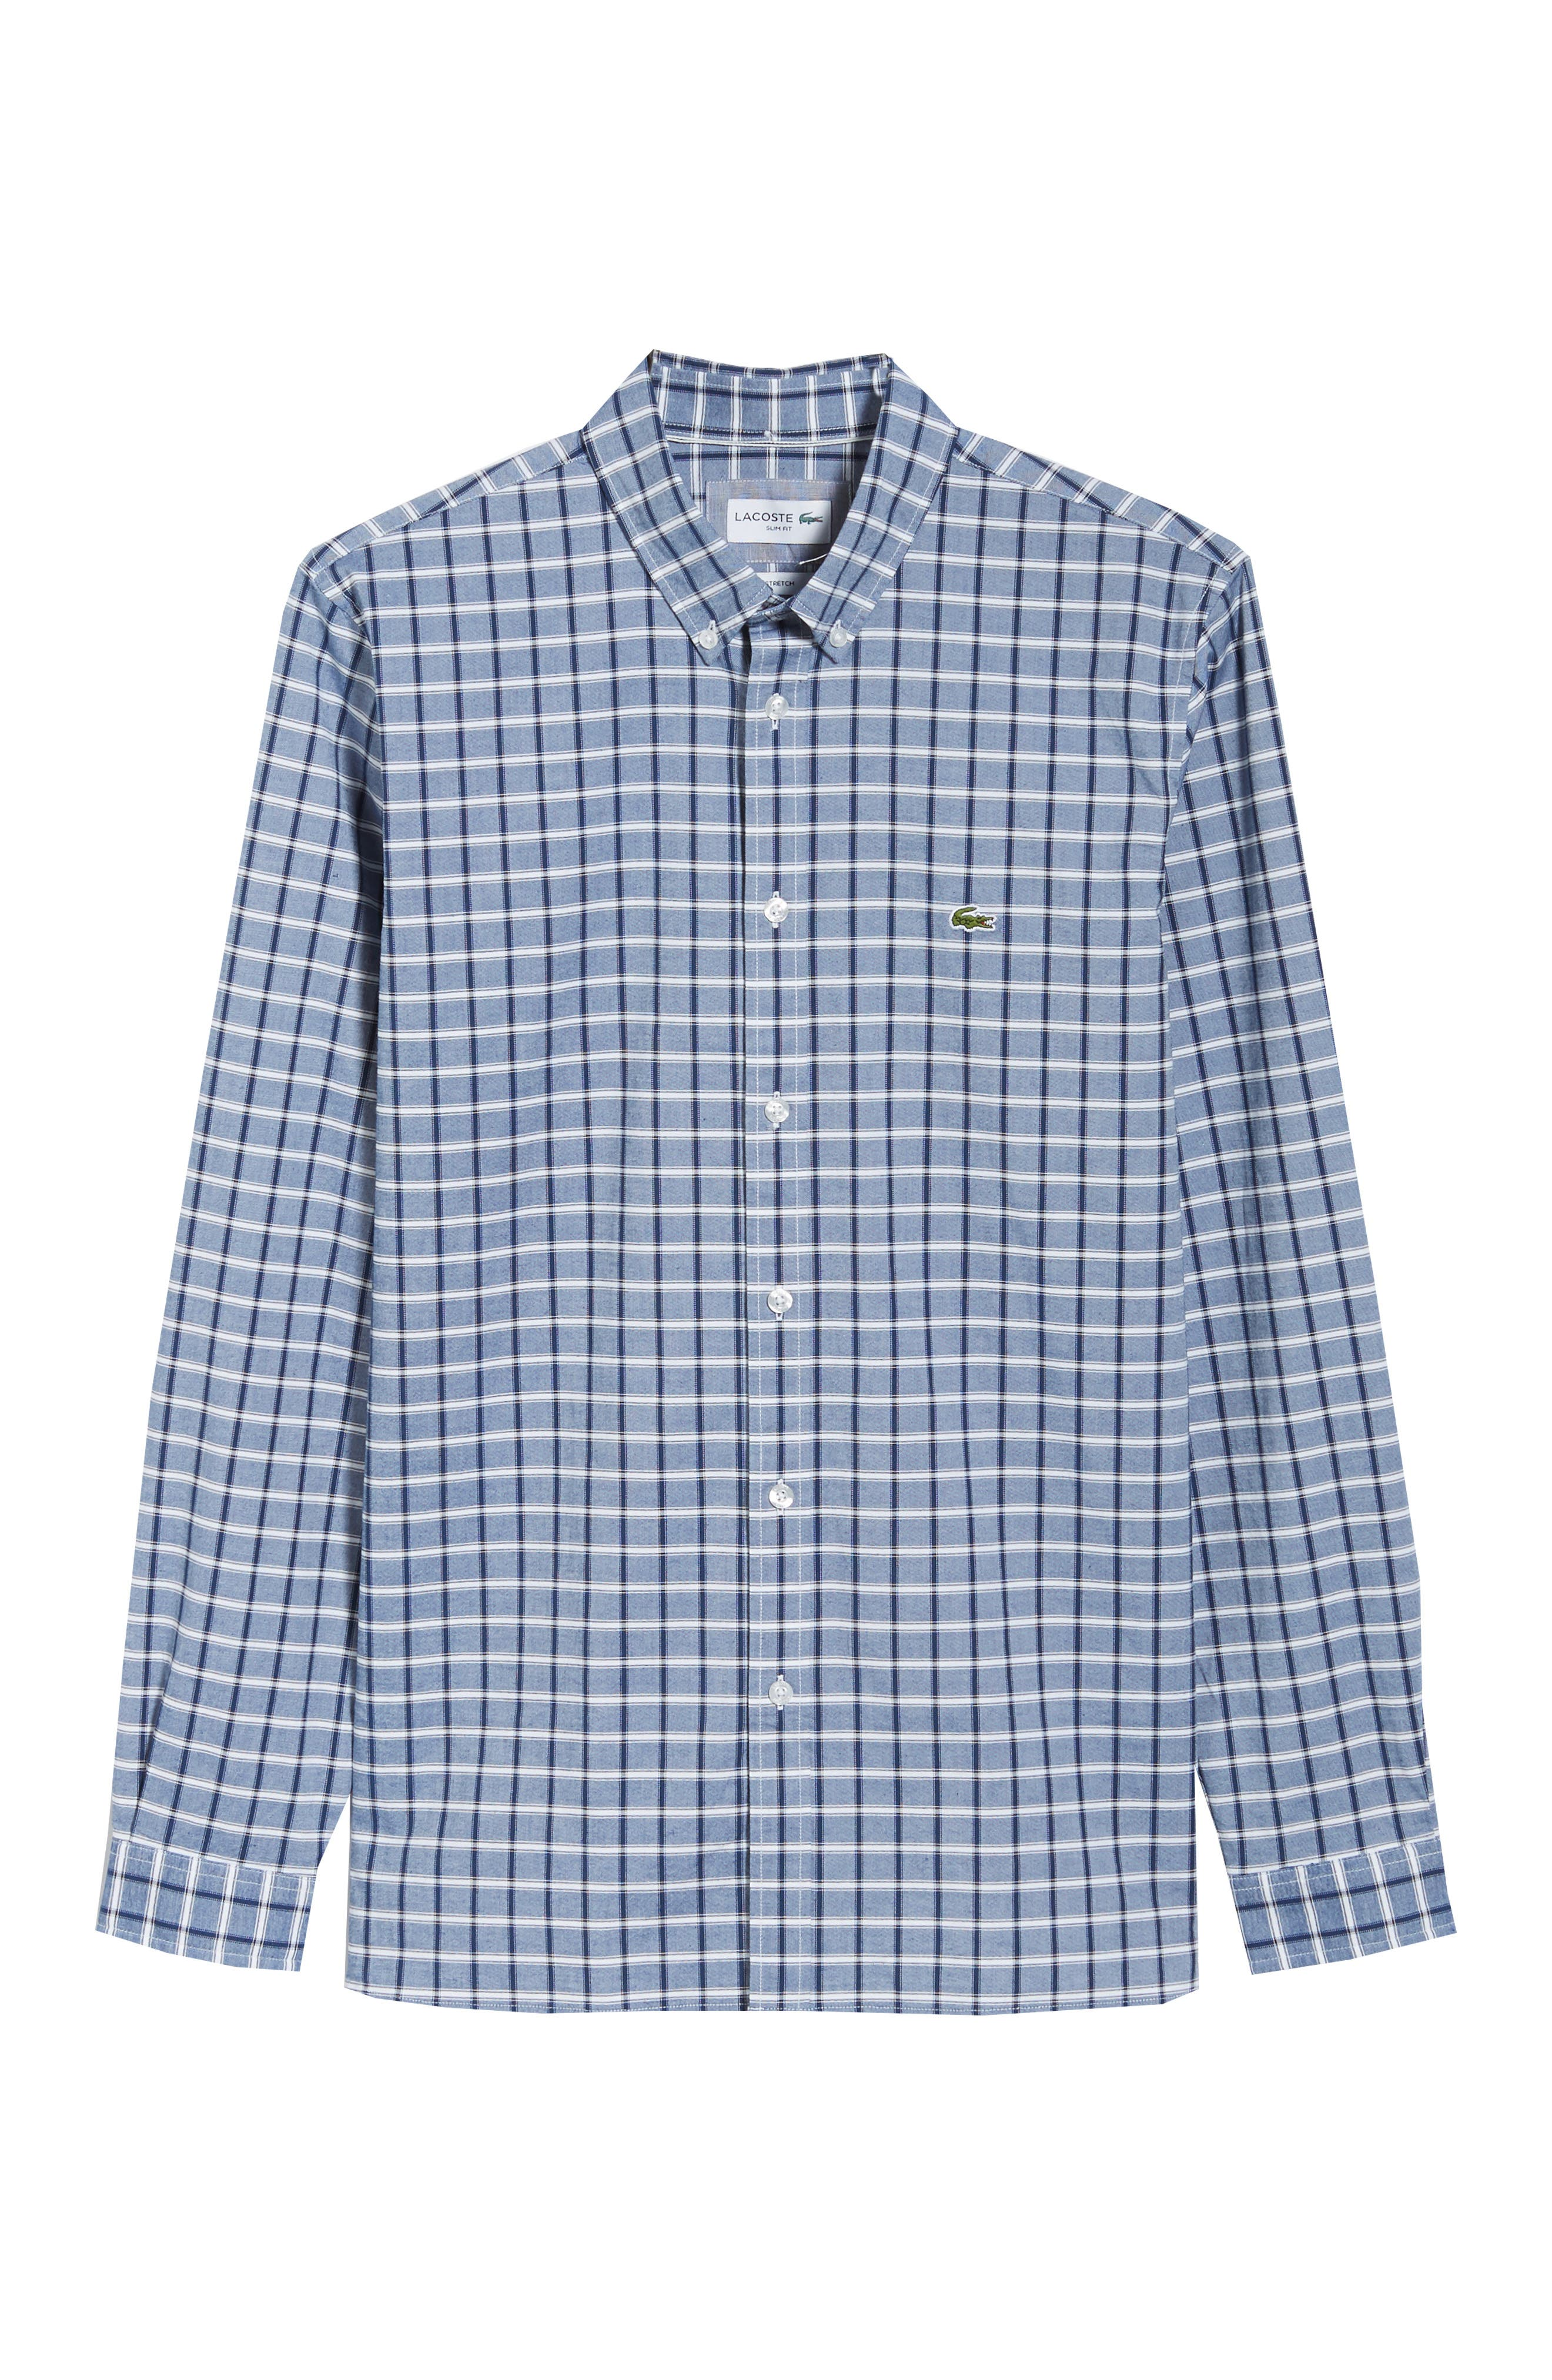 Slim Fit Check Oxford Sport Shirt,                             Alternate thumbnail 6, color,                             Navy Blue